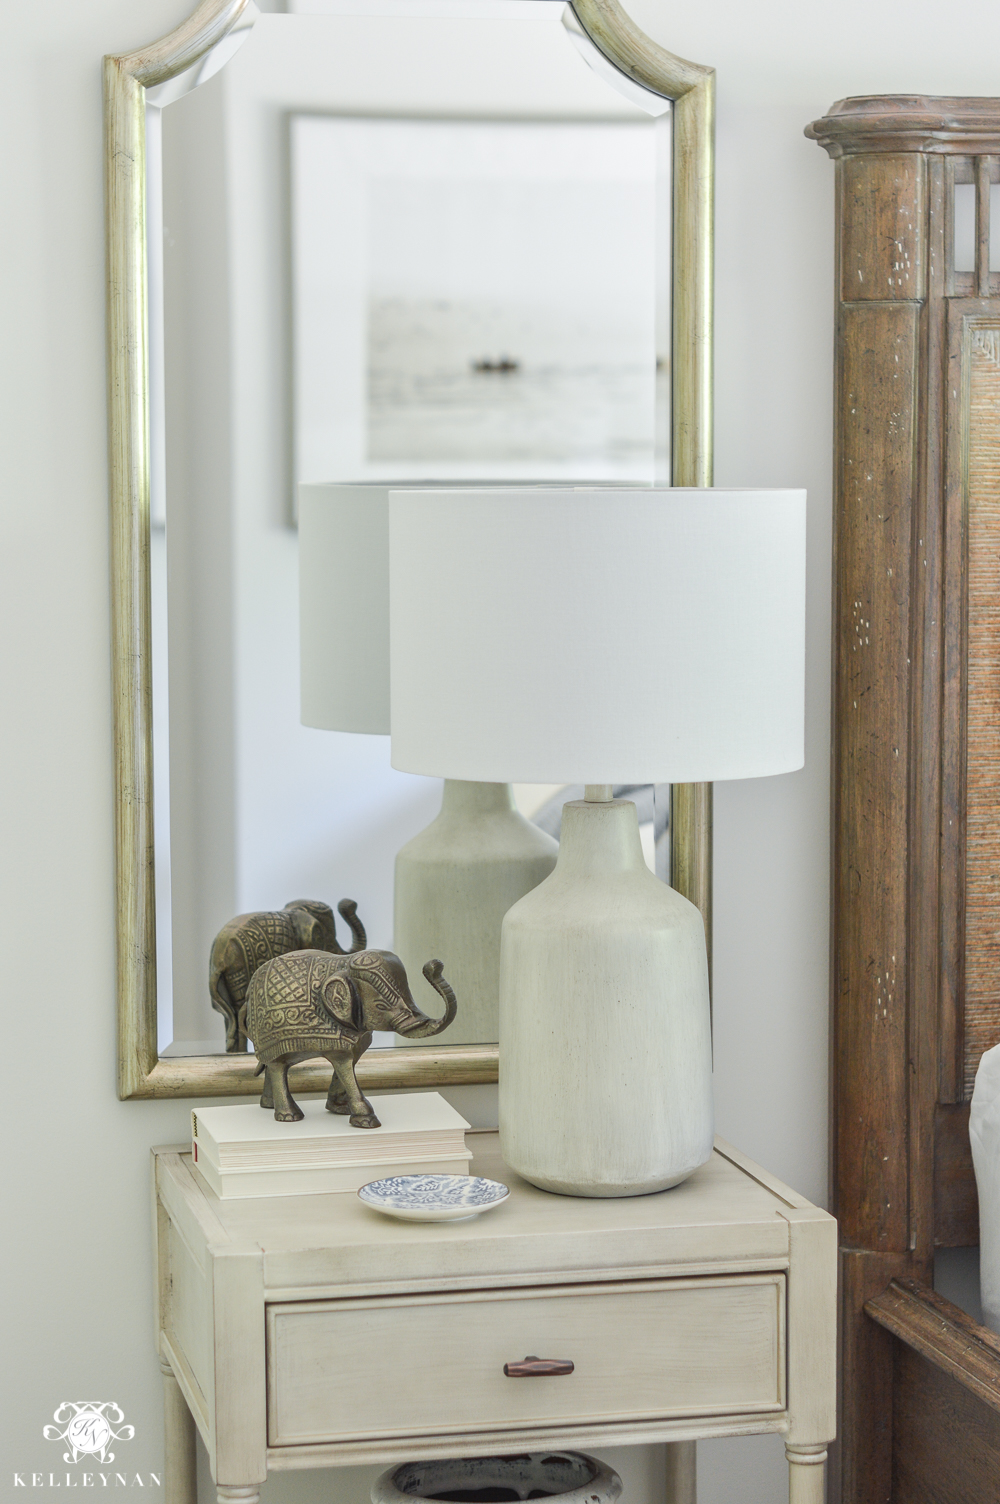 One Room Challenge Blue and White Guest Bedroom Reveal Before and After Makeover- how to style a night stand with mirror